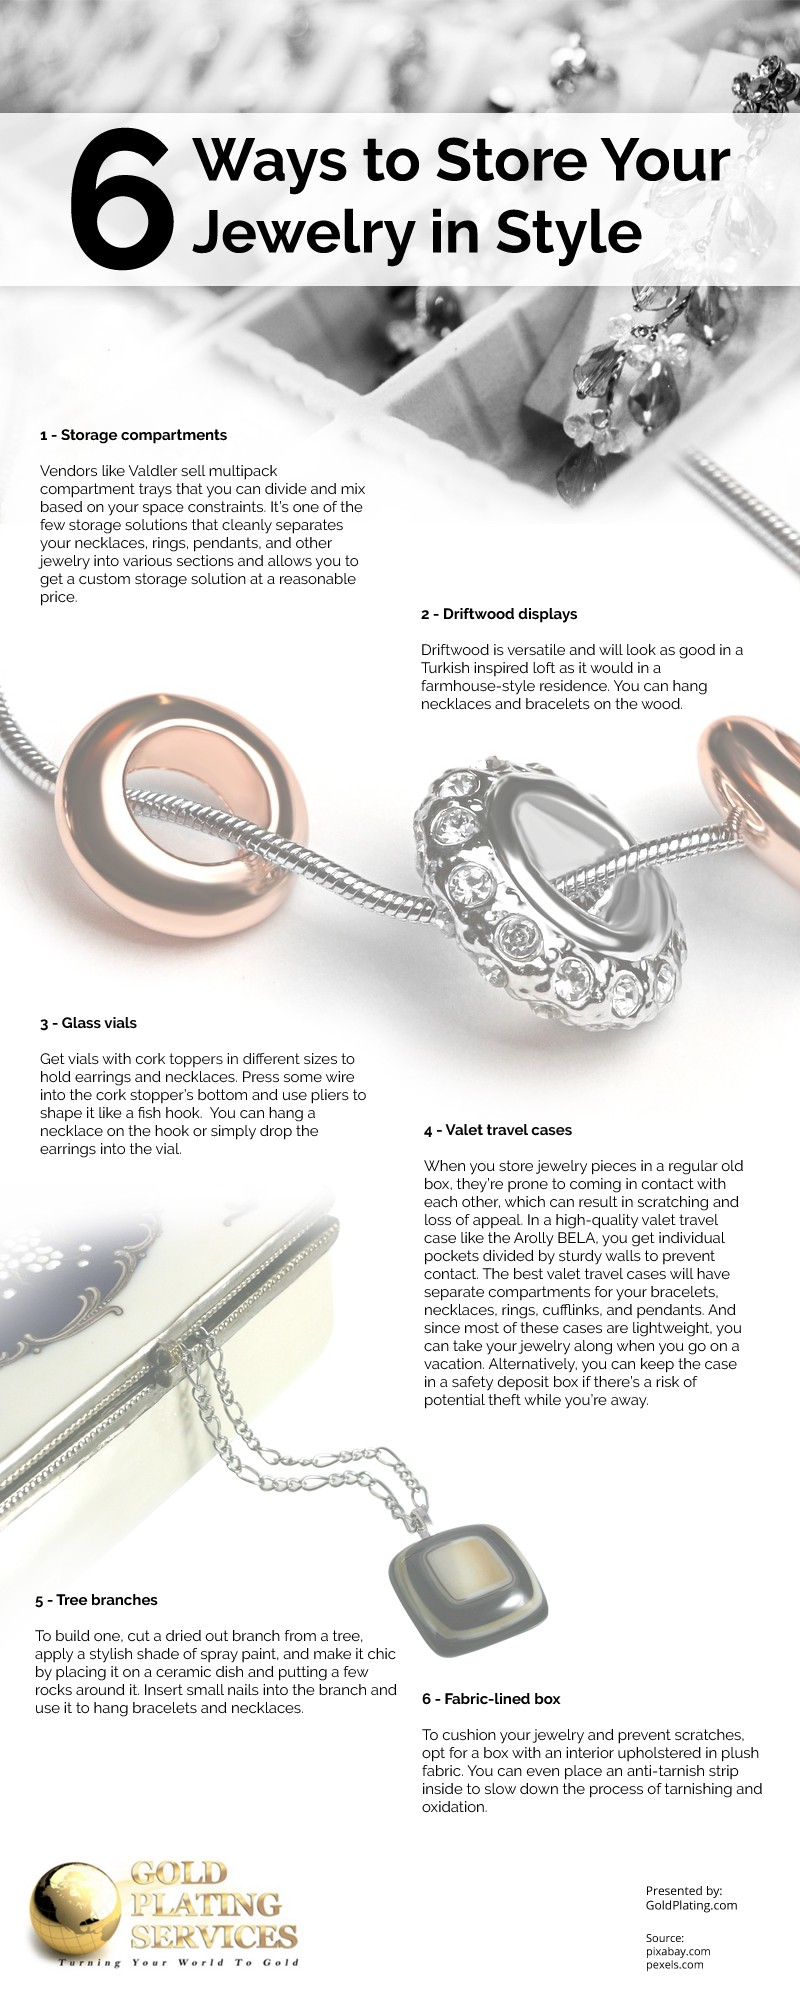 6 Ways to Store Your Jewelry in Style Infographic